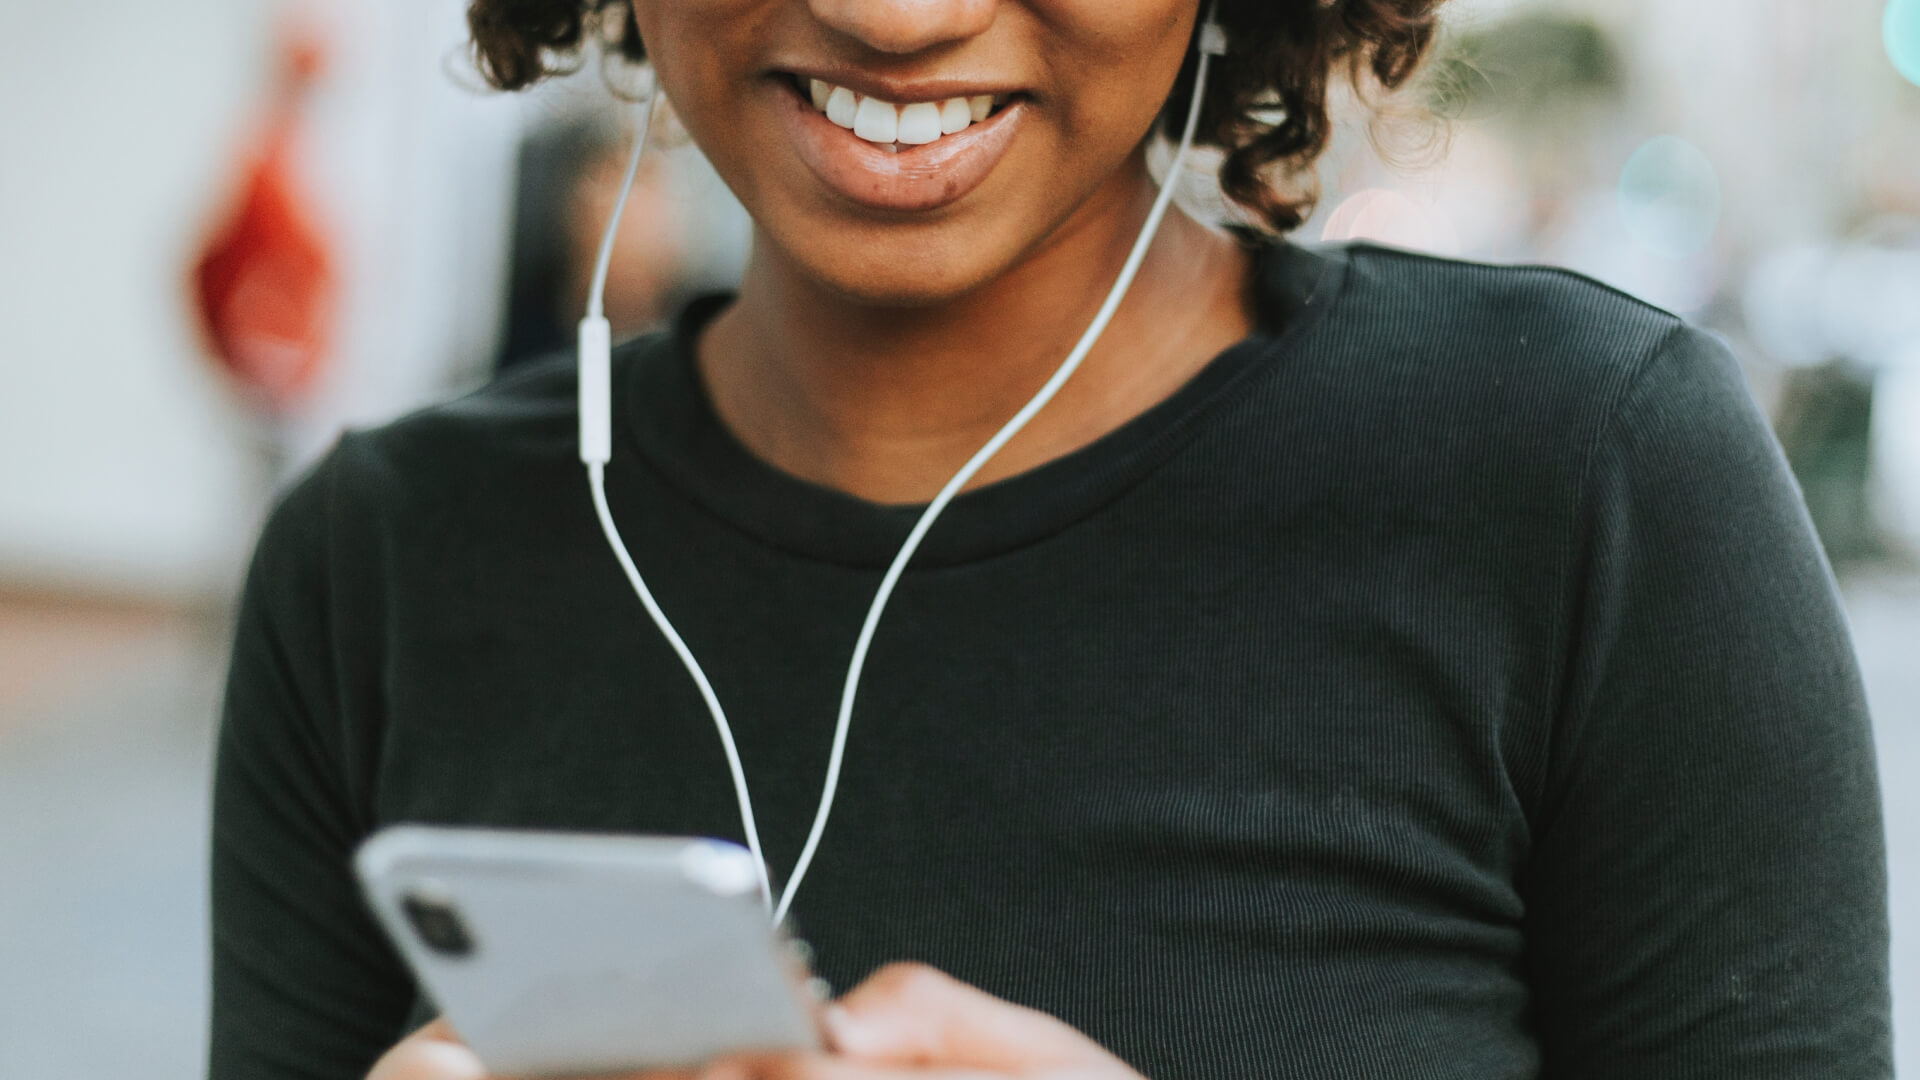 Smiling woman wearing earbuds